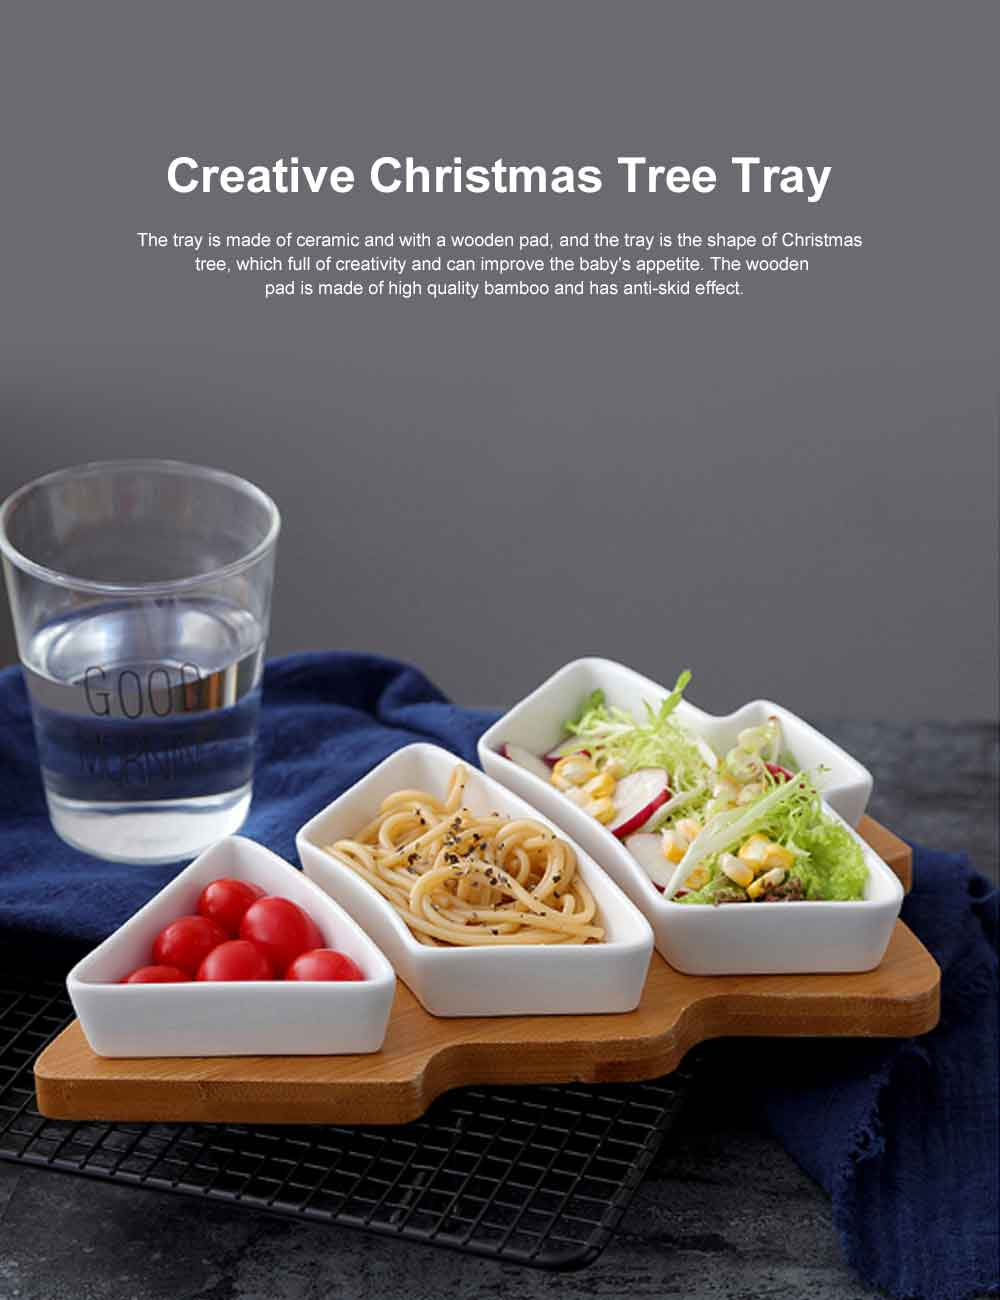 Ceramic Bamboo Tray, Creative Christmas Tree Tableware Snack Dessert Fruit Salad Plate Breakfast Dish 0